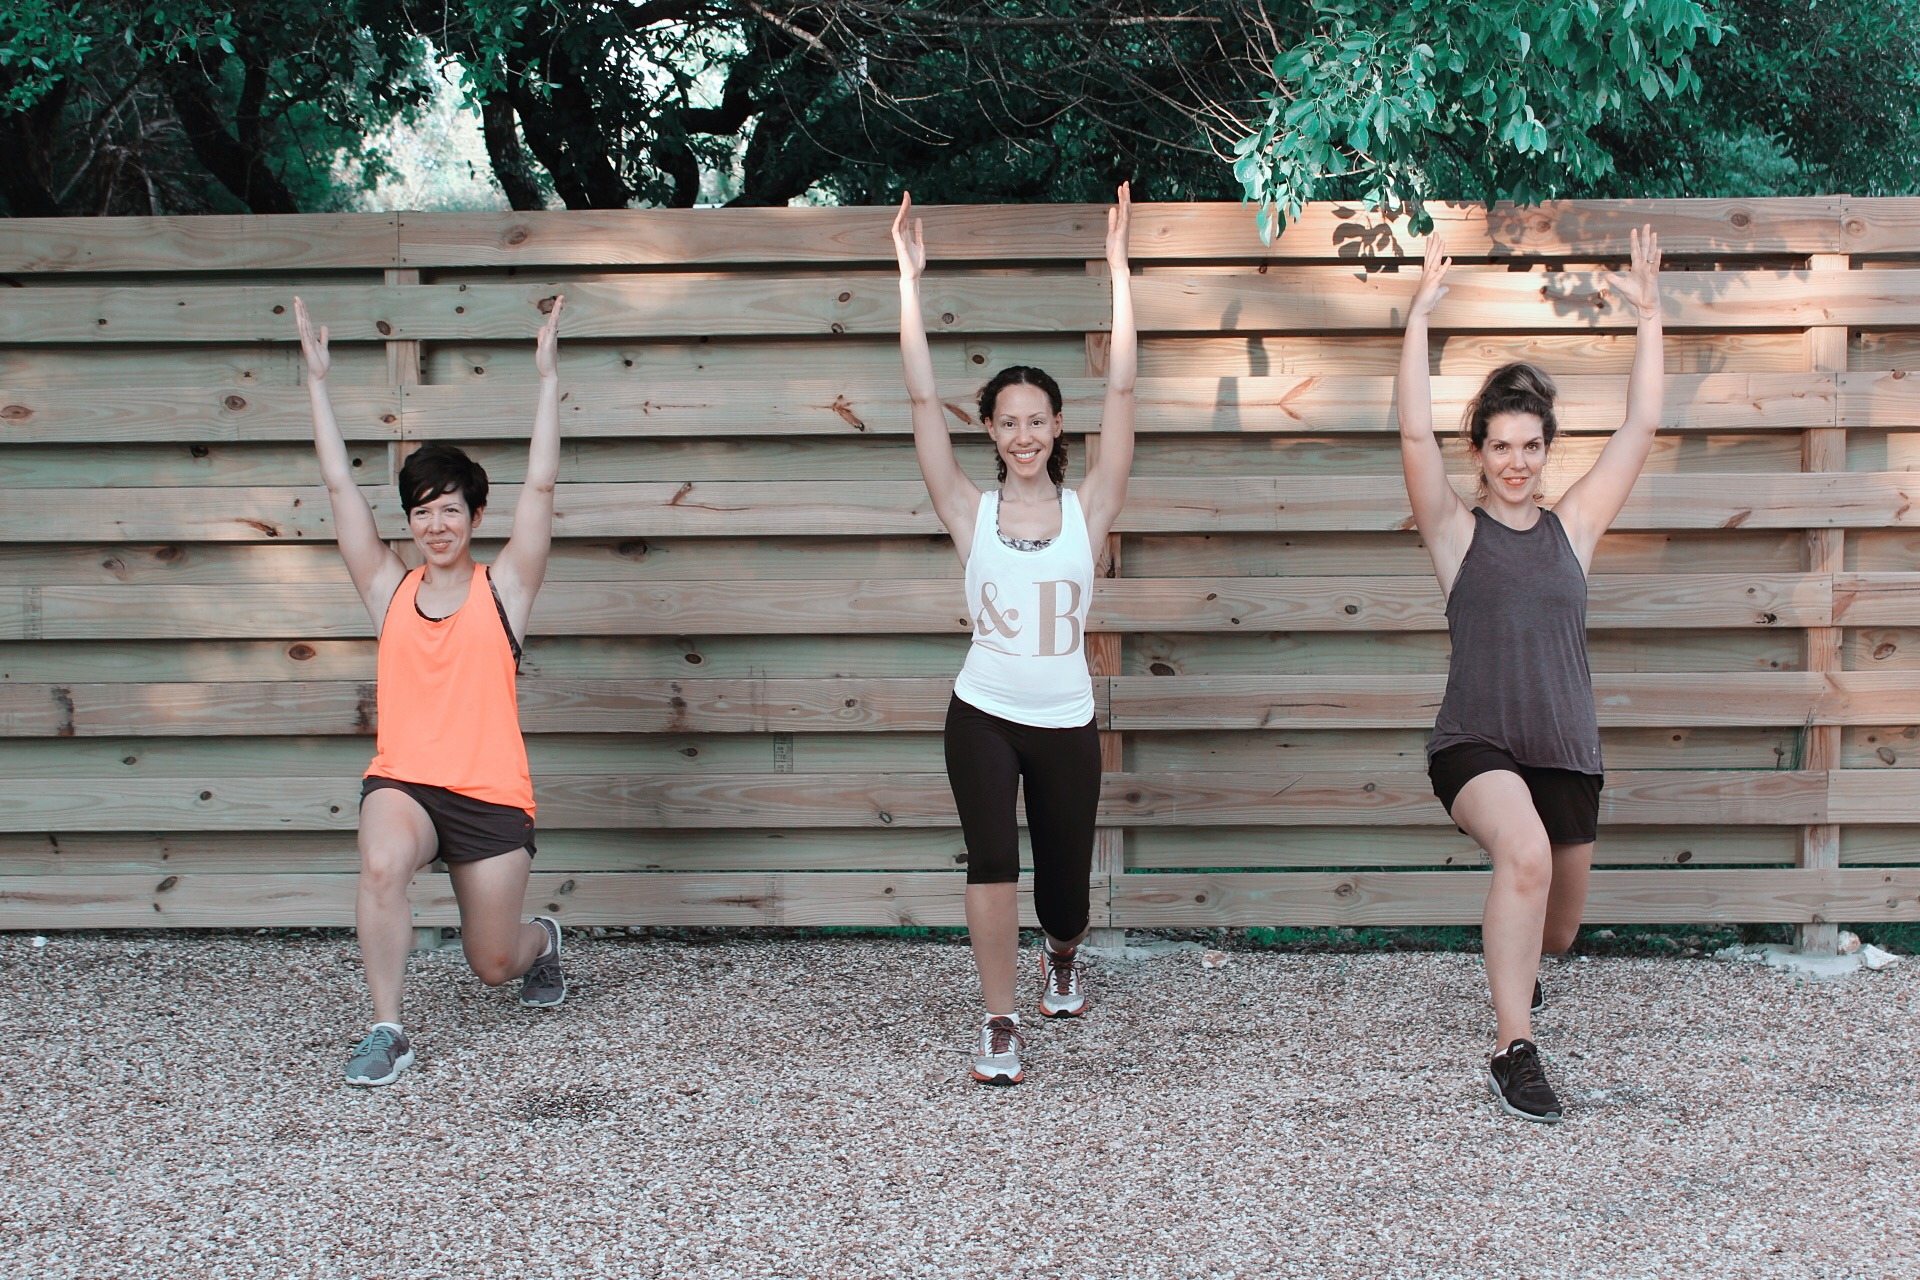 Three woman doing exercise stretches in front of a wooden fence